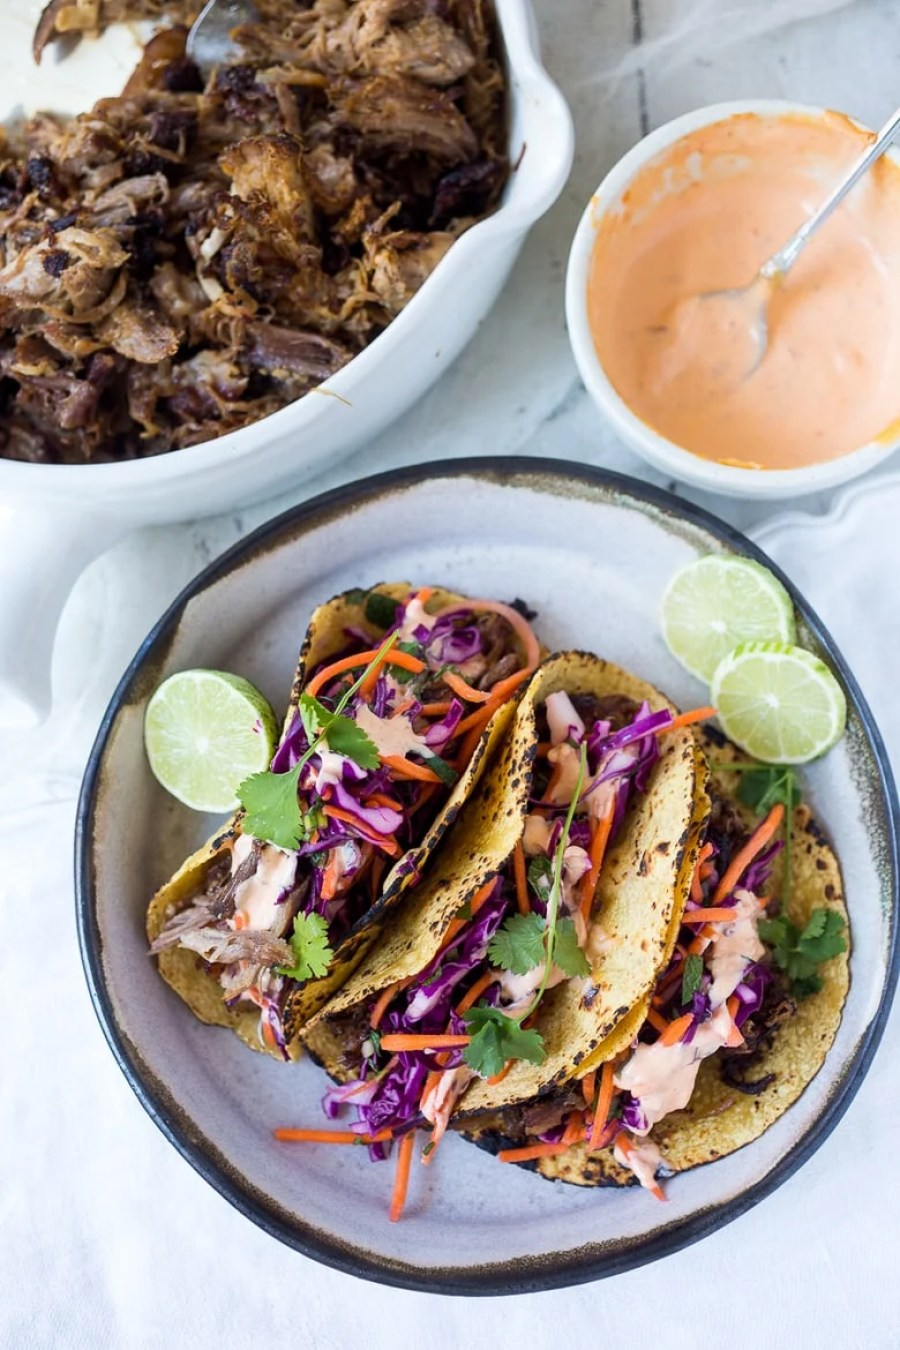 SLOW-ROASTED FIVE SPICE PULLED PORK (OR BEEF) TACOS